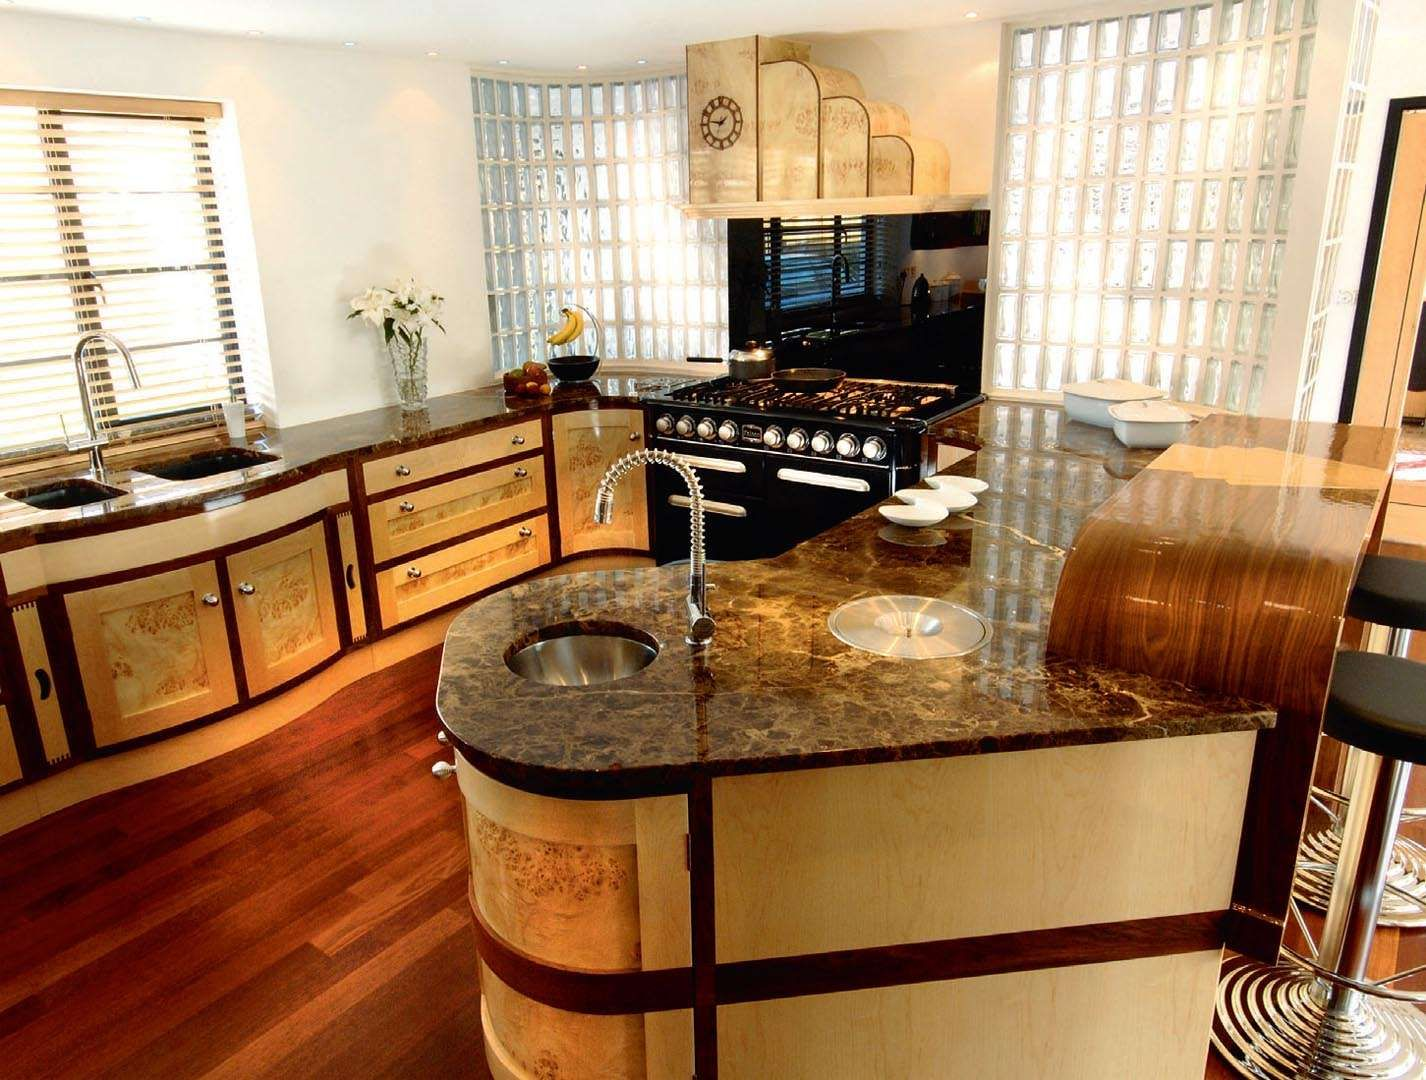 Arts & Crafts and Art Deco style kitchens | Period Living ...